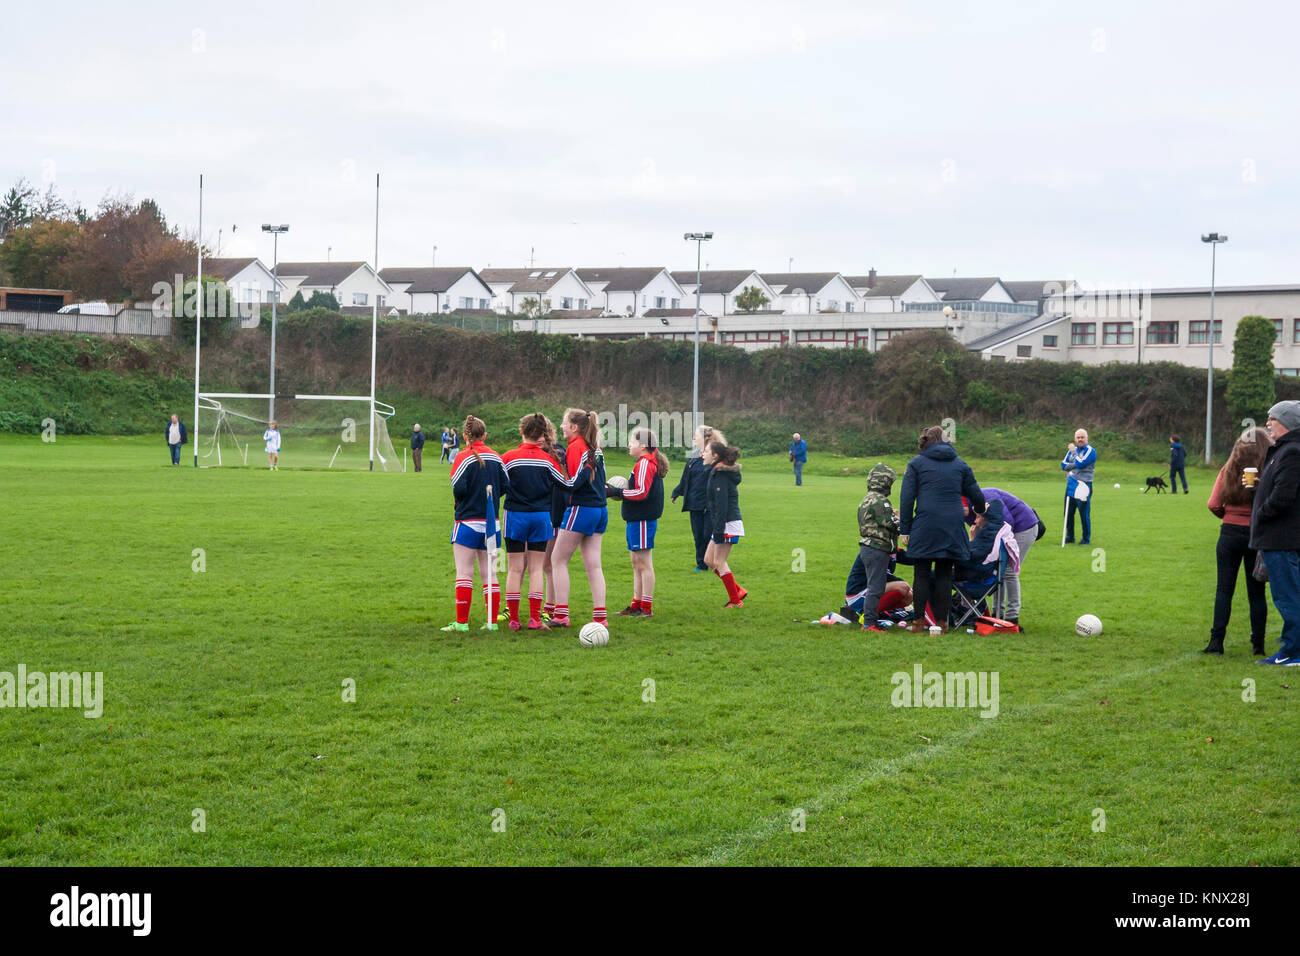 Team subs waiting to play, GAA football Match, cold winters day - Stock Image